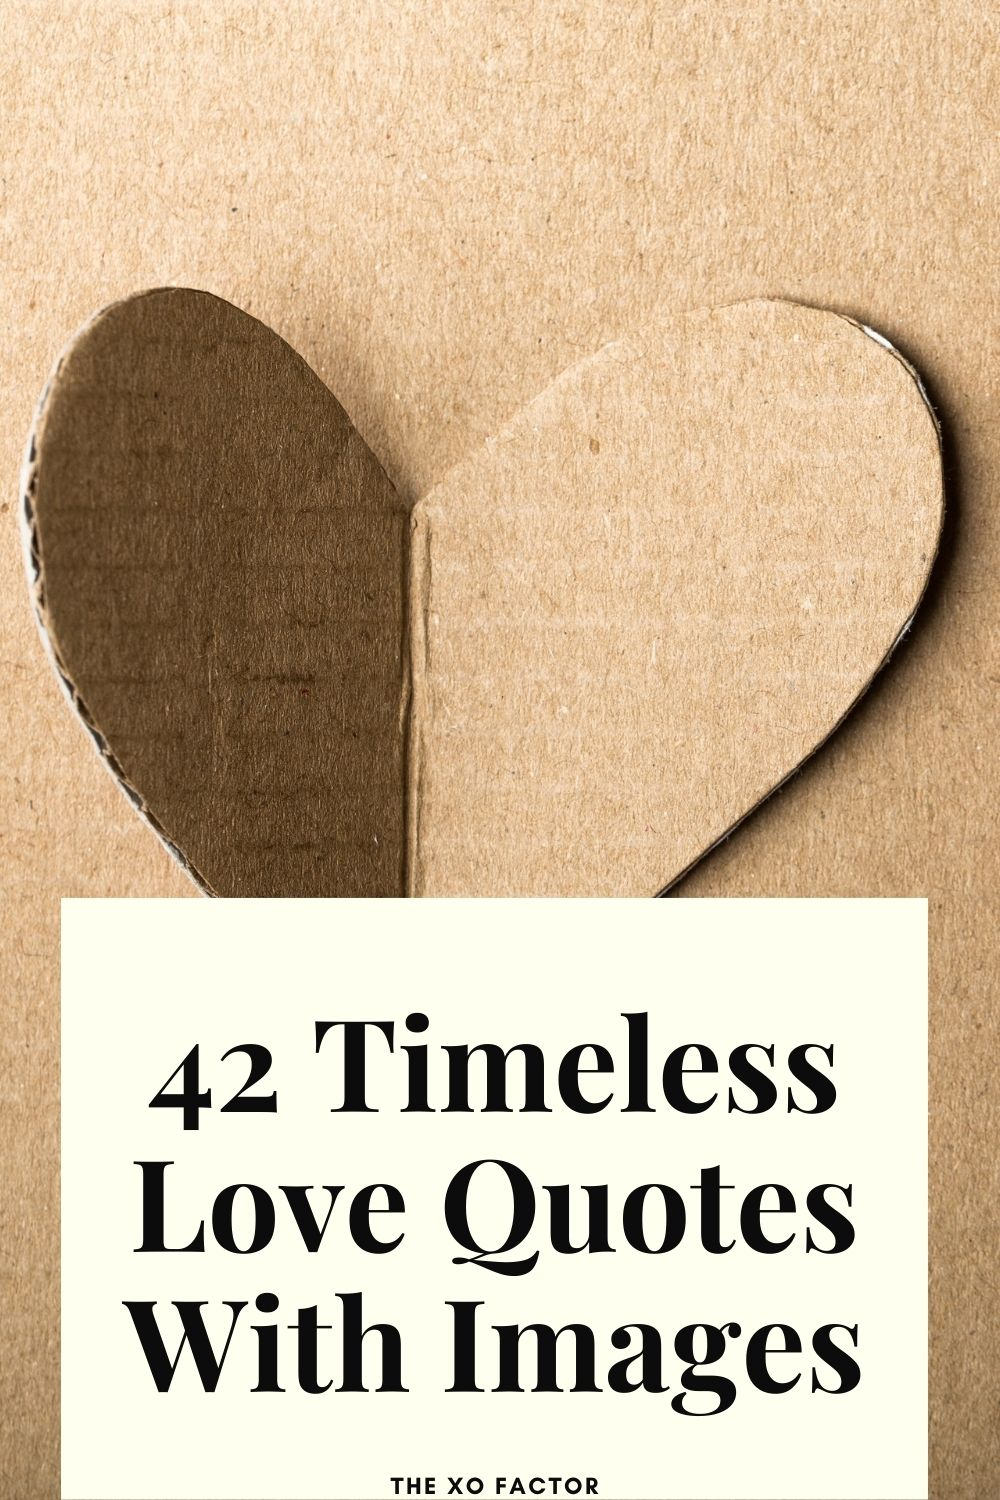 42 Timeless love quotes with images